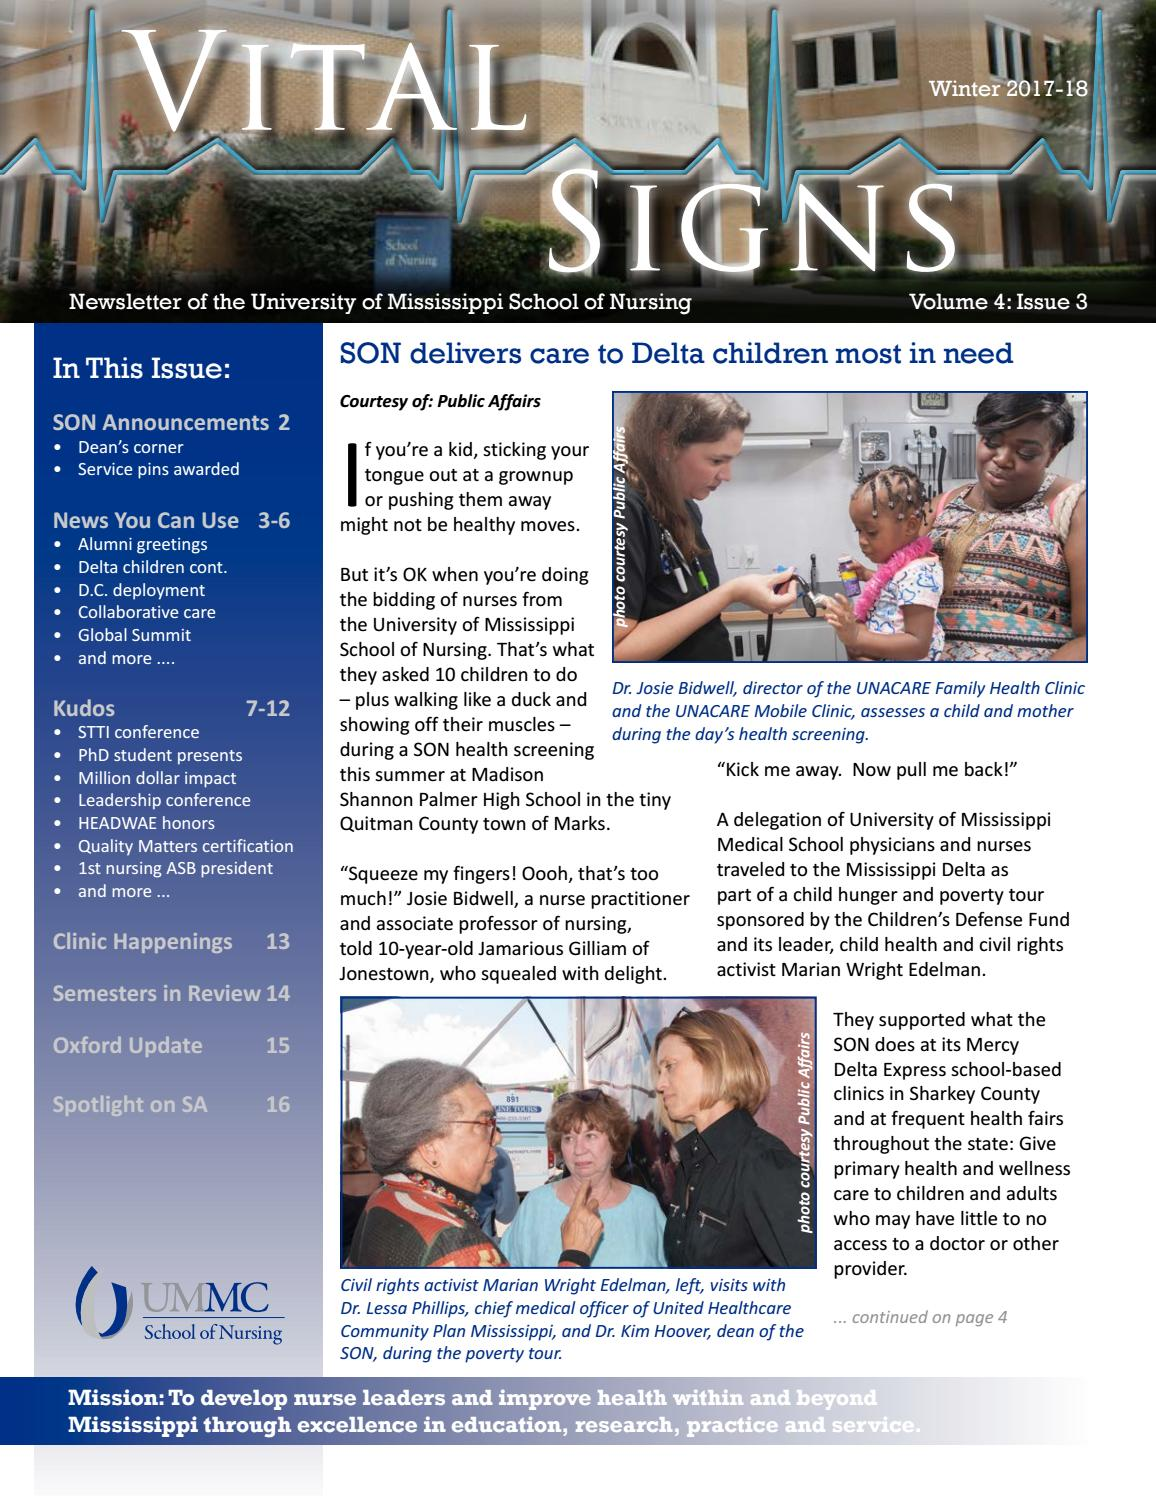 Vital Signs Winter 2017 18 By Ummc School Of Nursing Issuu